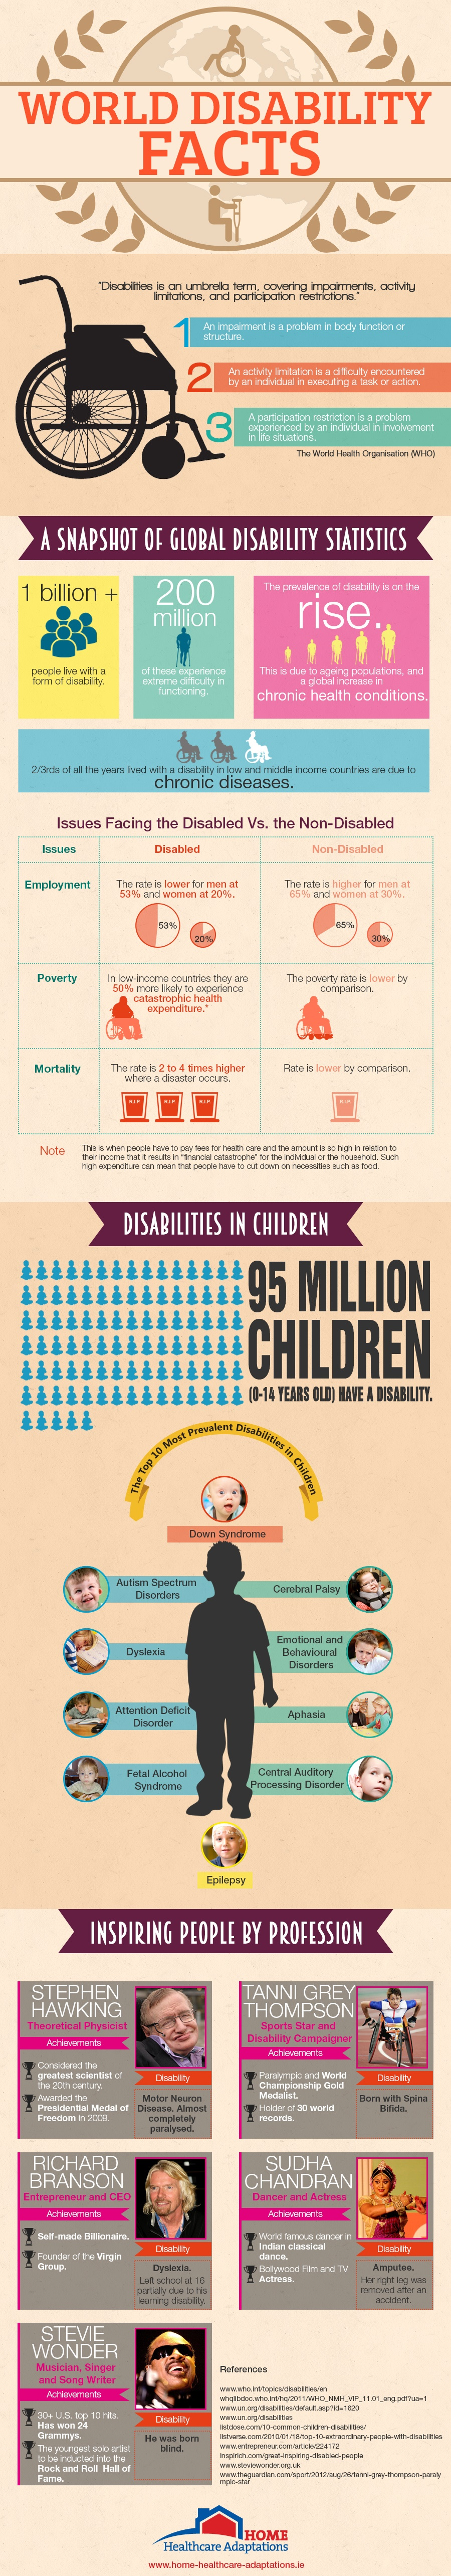 World Disability Facts